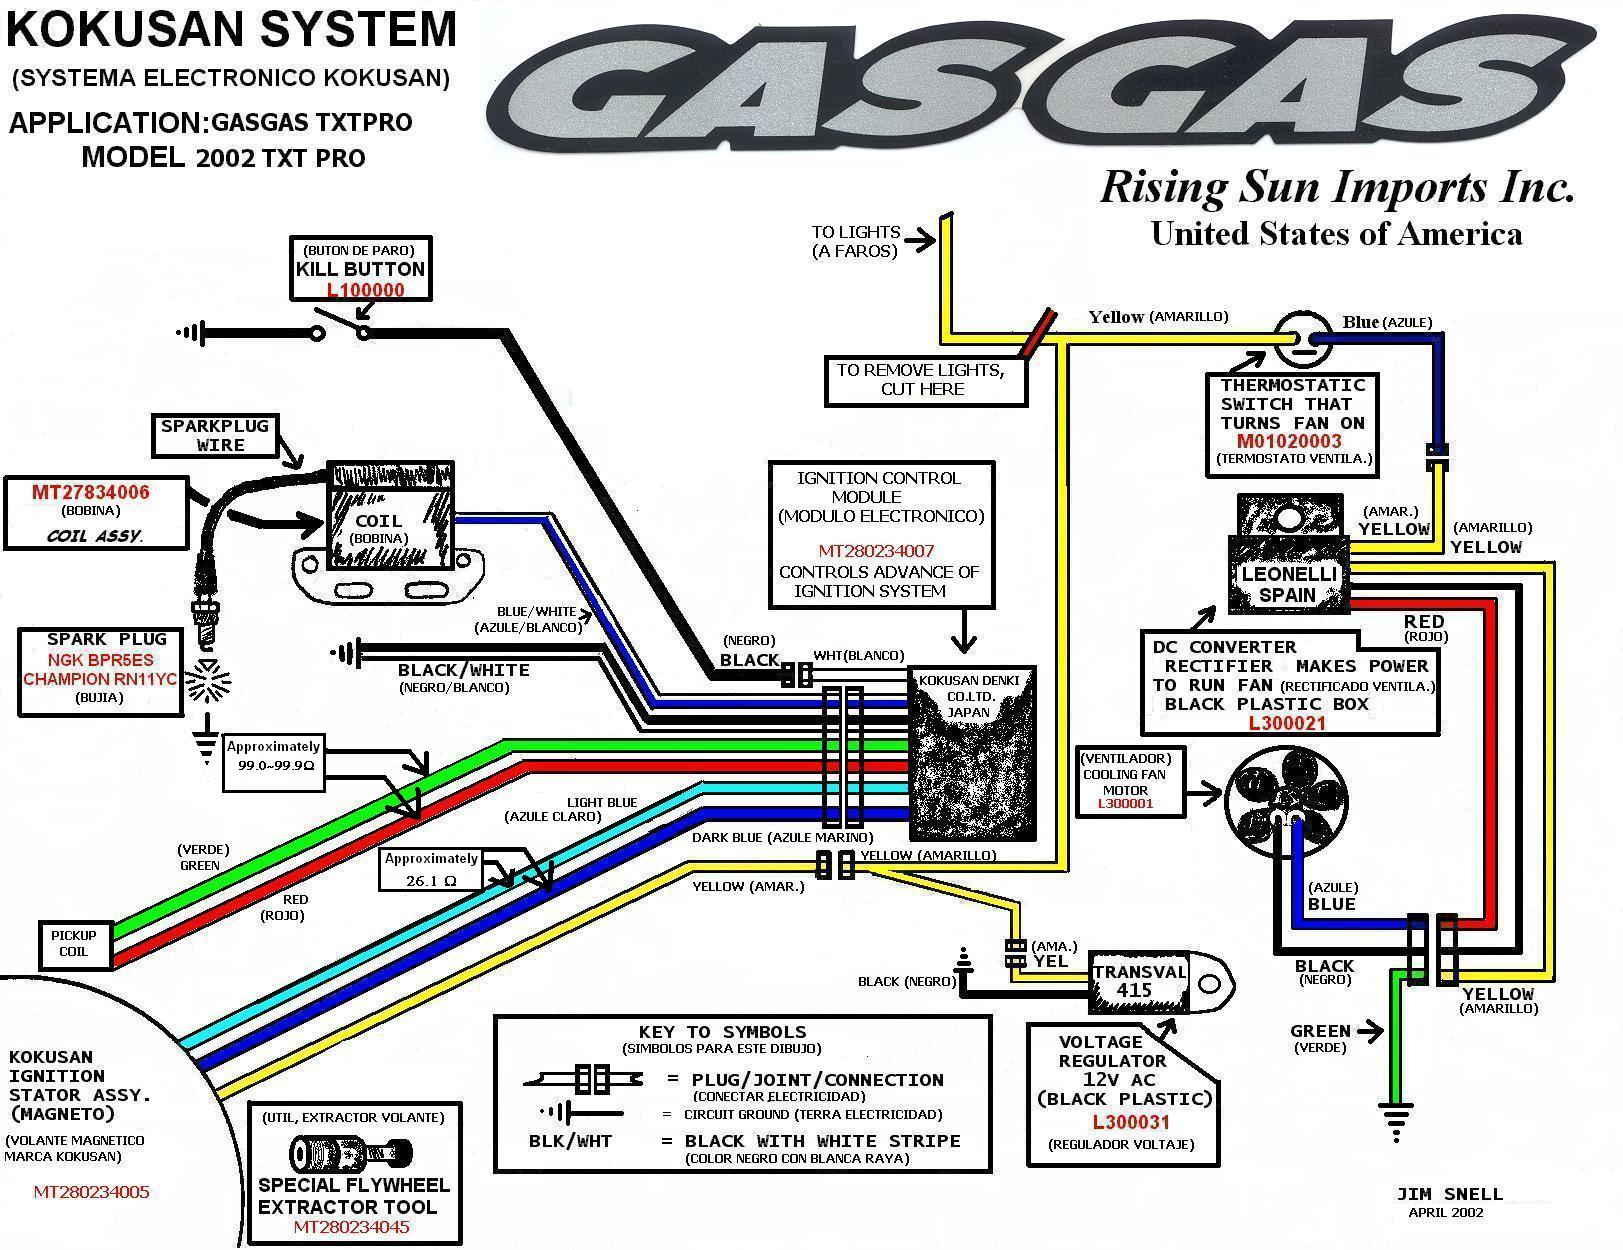 kokusan-denki-cdi-wiring-diagram-4 Yamaha Motorcycle Cdi Wiring Diagrams on yamaha banshee, chinese quad, yamaha scooter 6 pin, ac 6 wire,